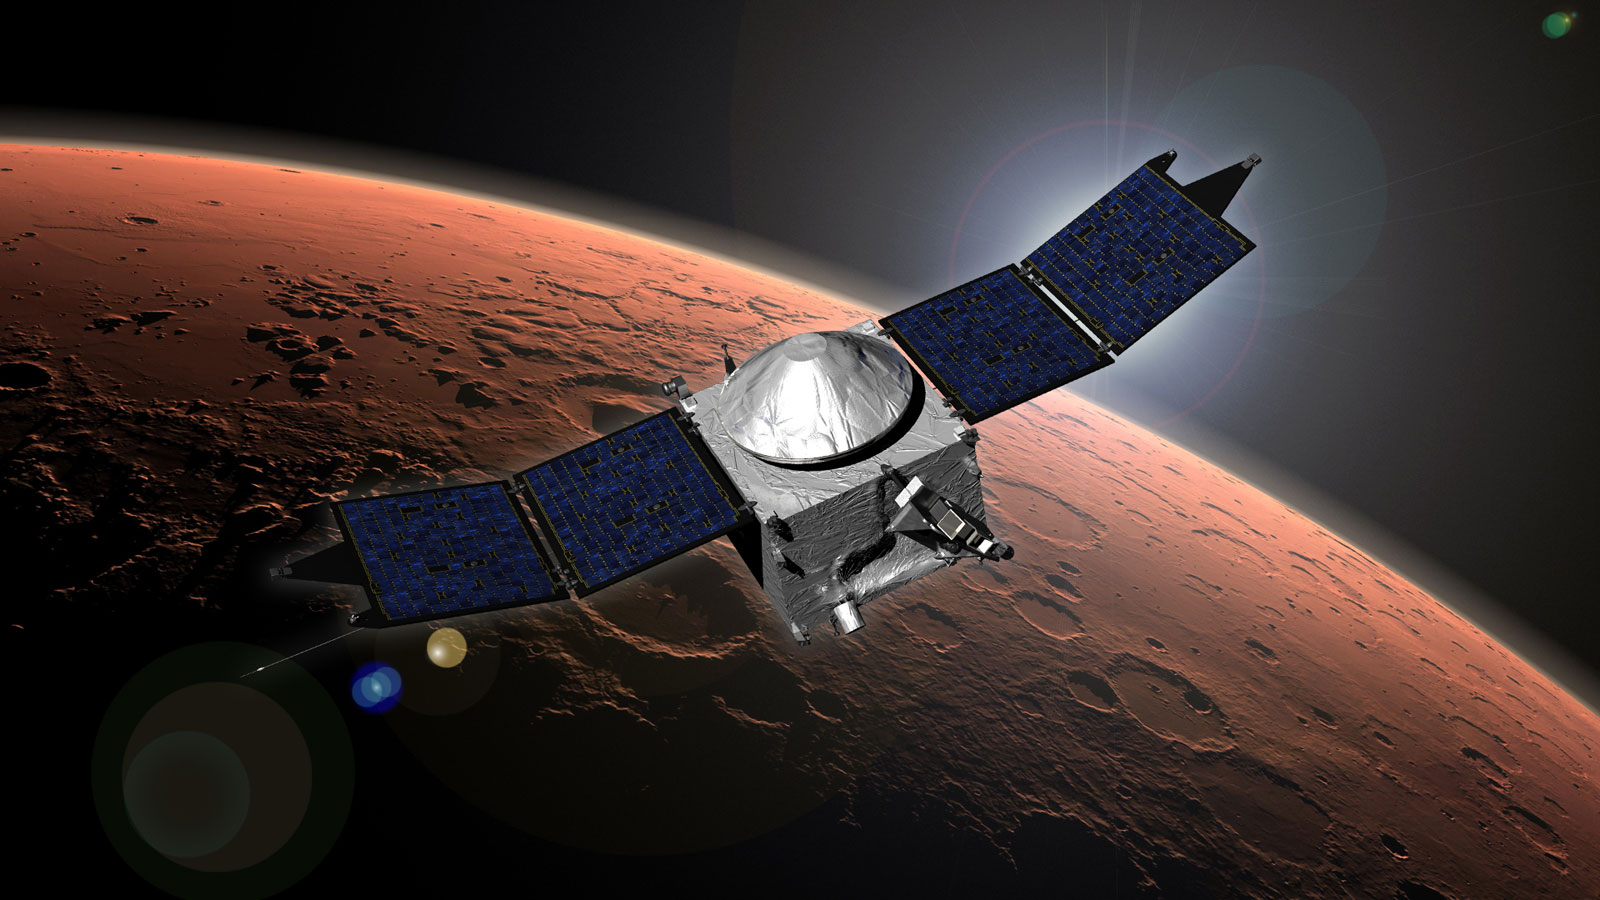 Figure 3: The MAVEN orbiter as it orbits Mars. Credit: NASA/Goddard Space Flight Center